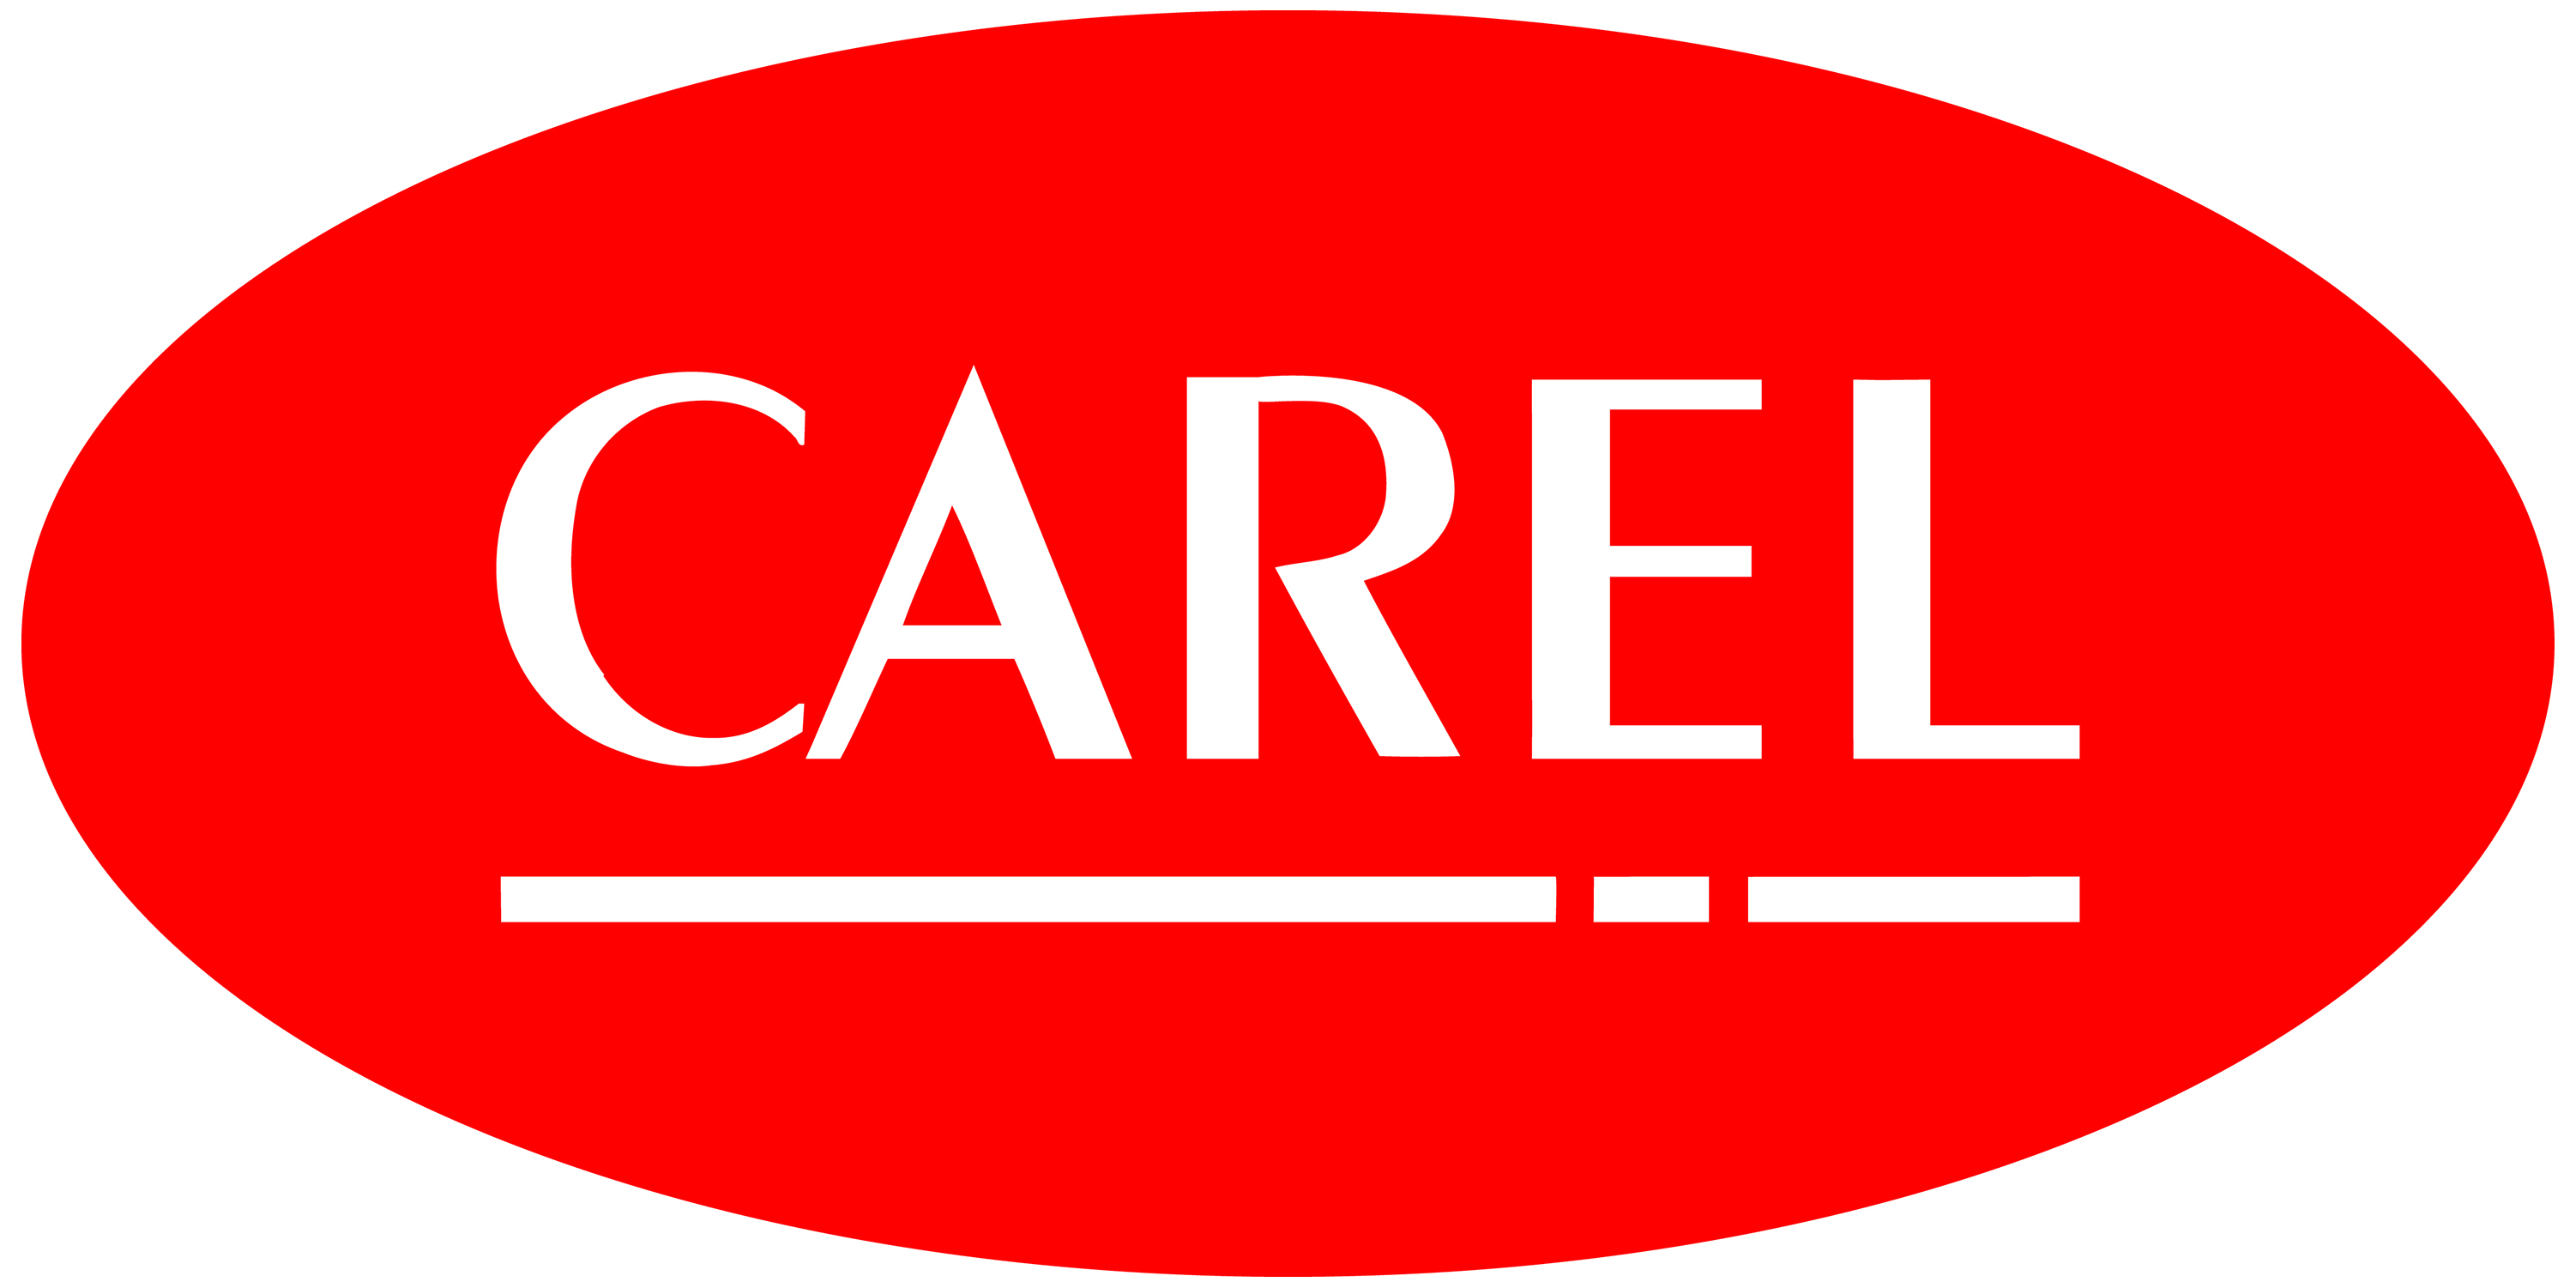 CAREL - Performance Appraisal